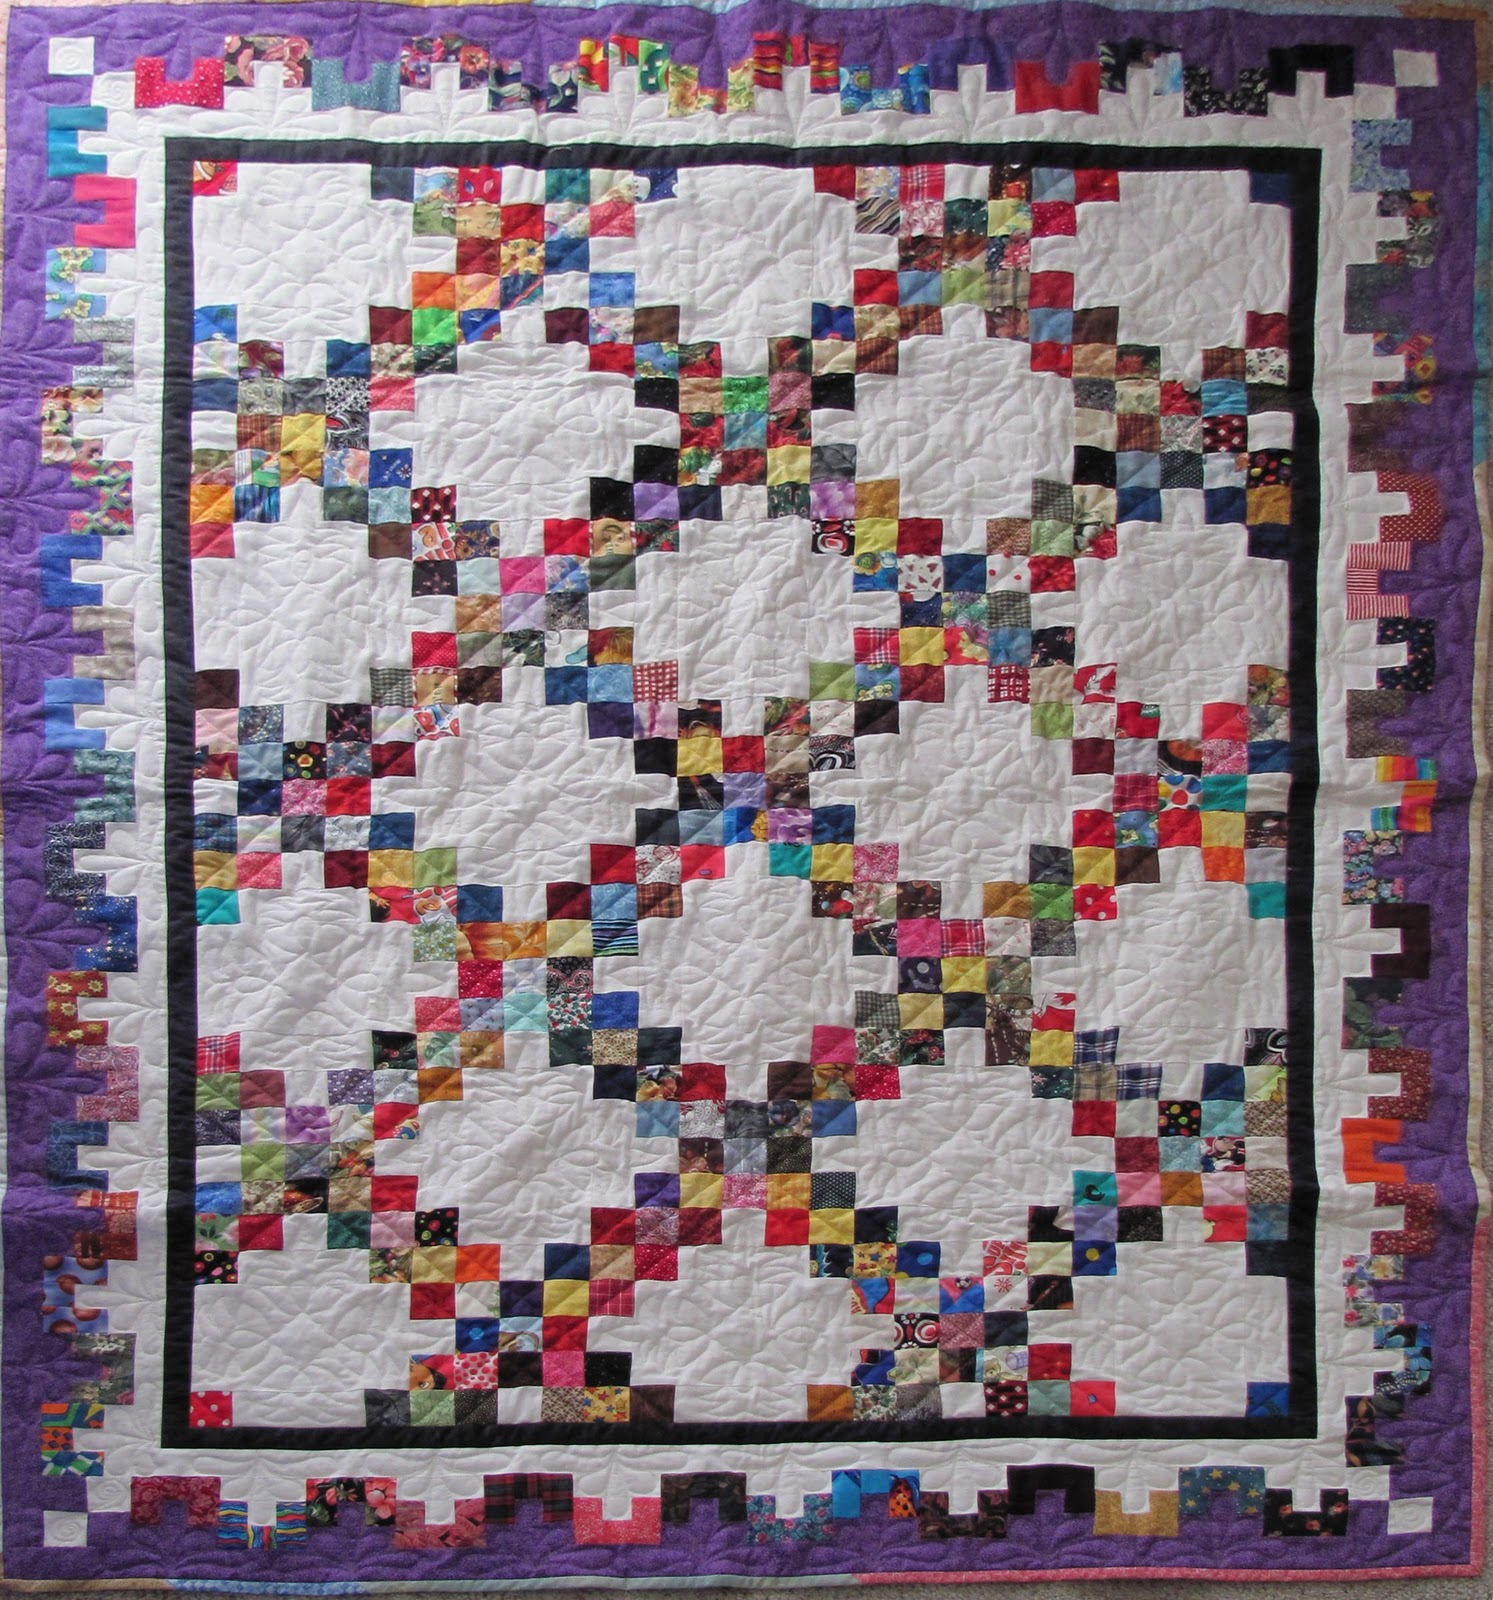 Irish Quilting Patterns : The Proficient Needle: Completed Scrappy Irish Chain